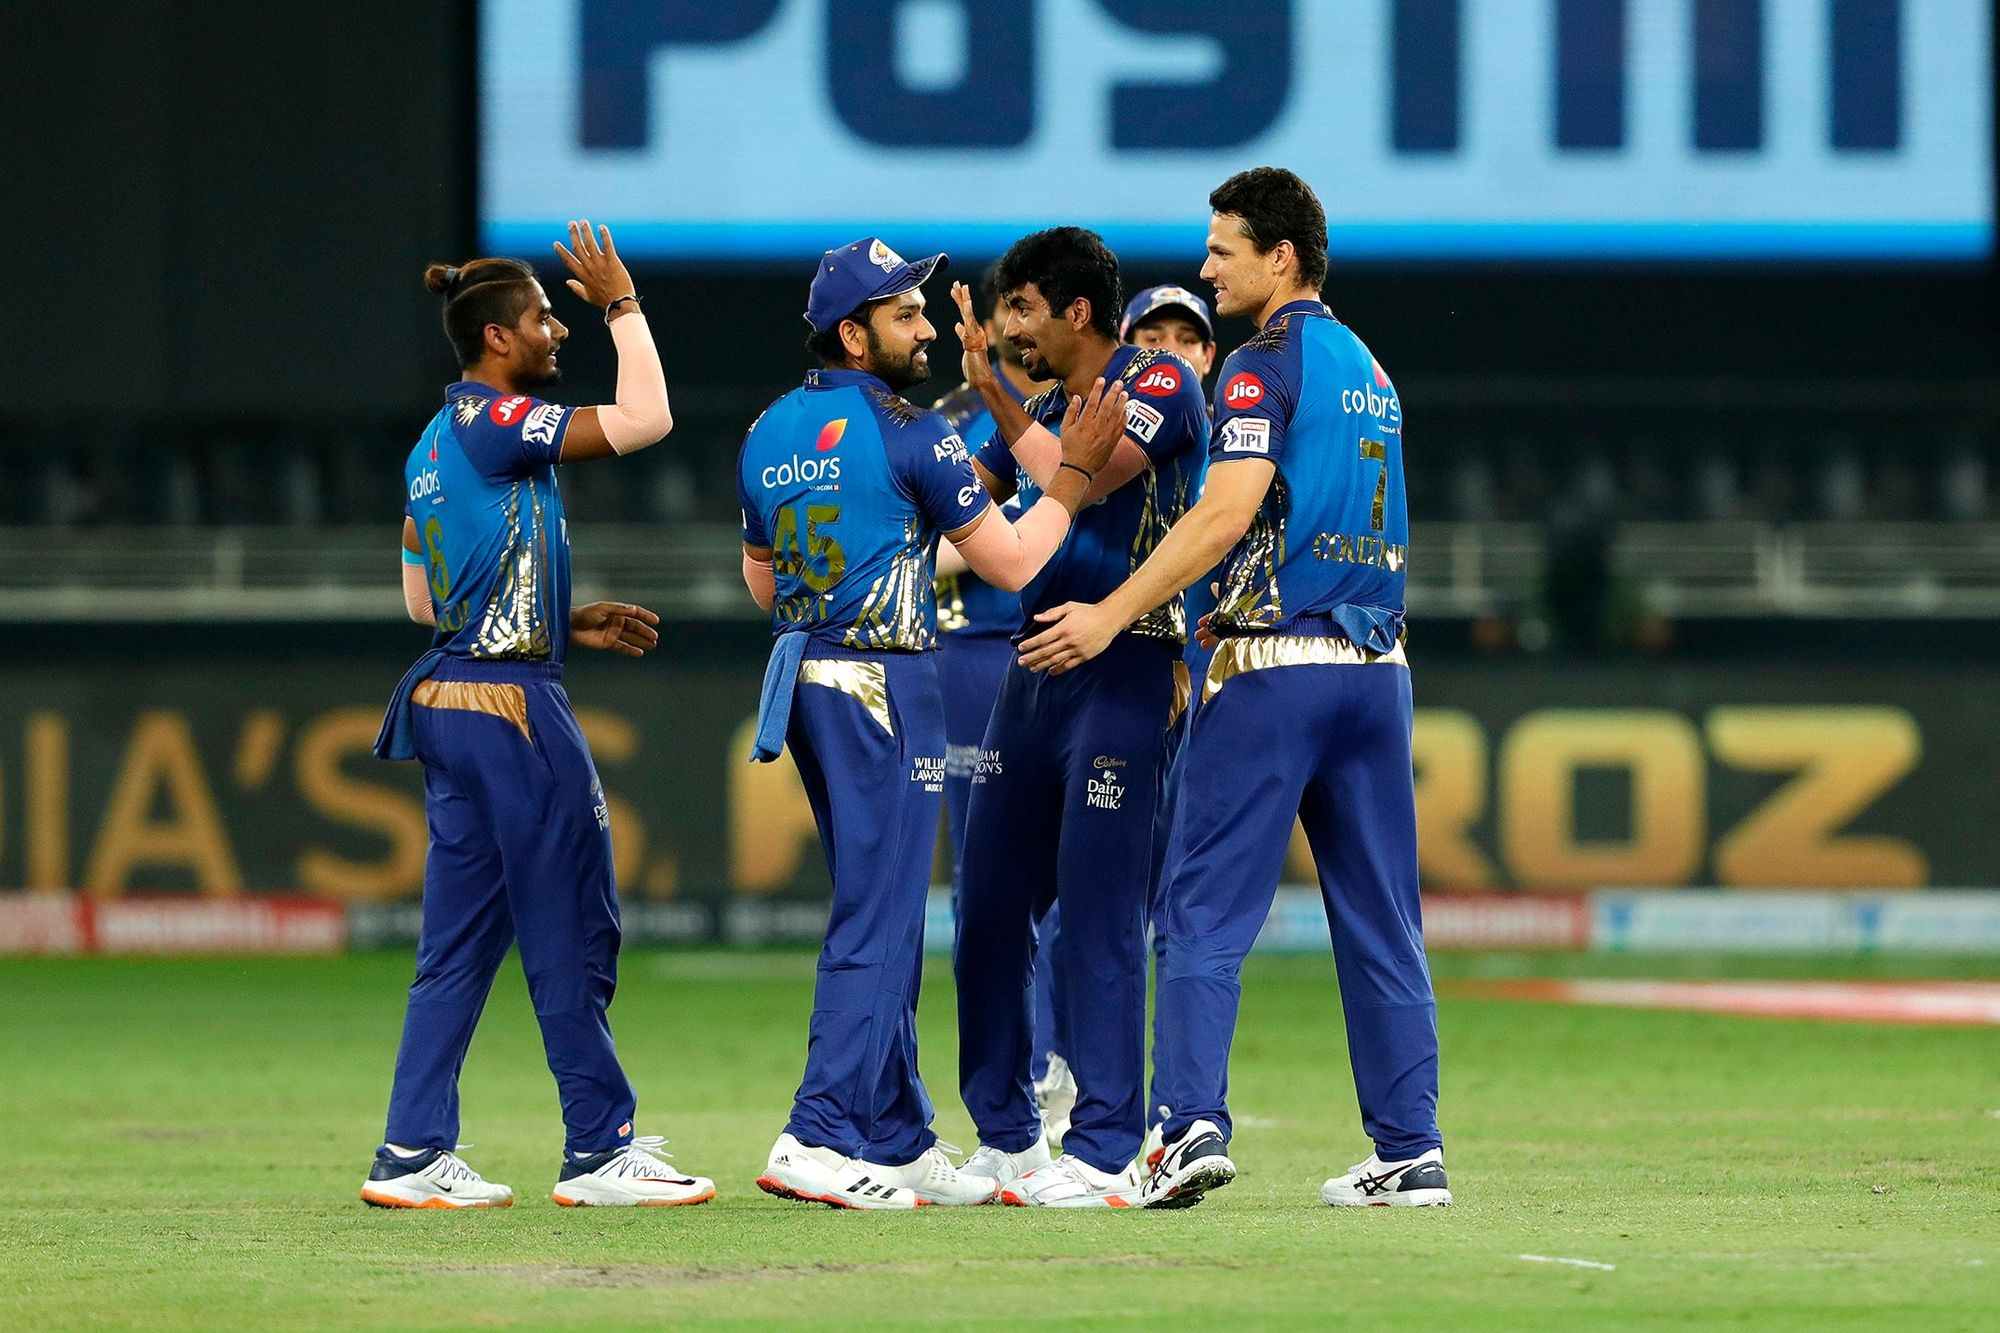 Man of the Match Jasprit Bumrah took 4 wickets against DC in Dubai. (Photo - BCCI / IPL)